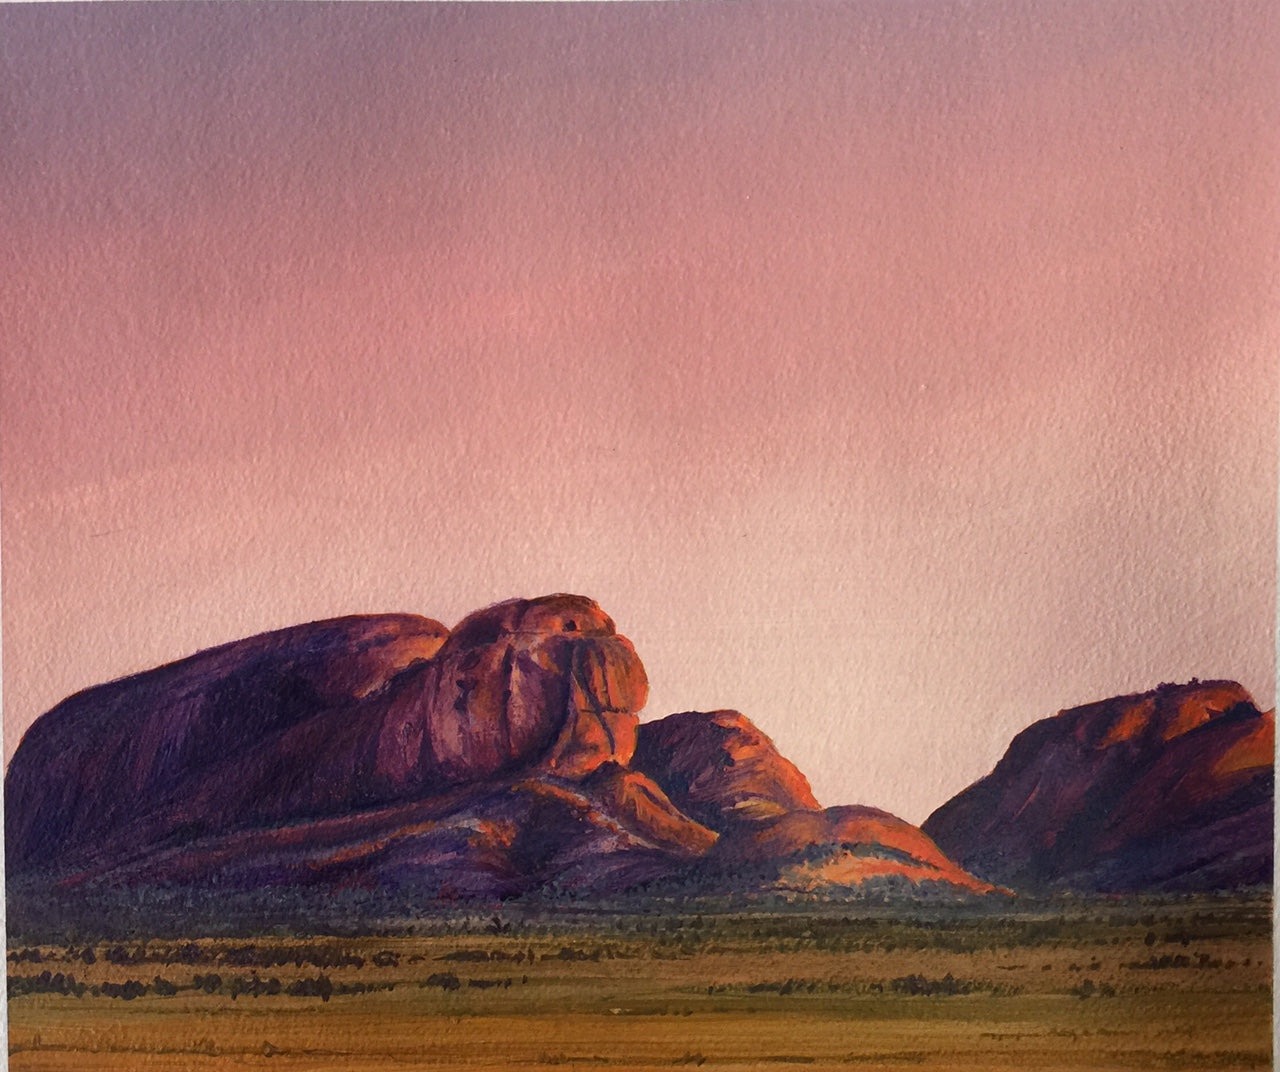 files/Kevin_Orpin_Kata_Juta_-_The_Olgas_6_35_x_30cm_Acrylic_on_Paper.jpg